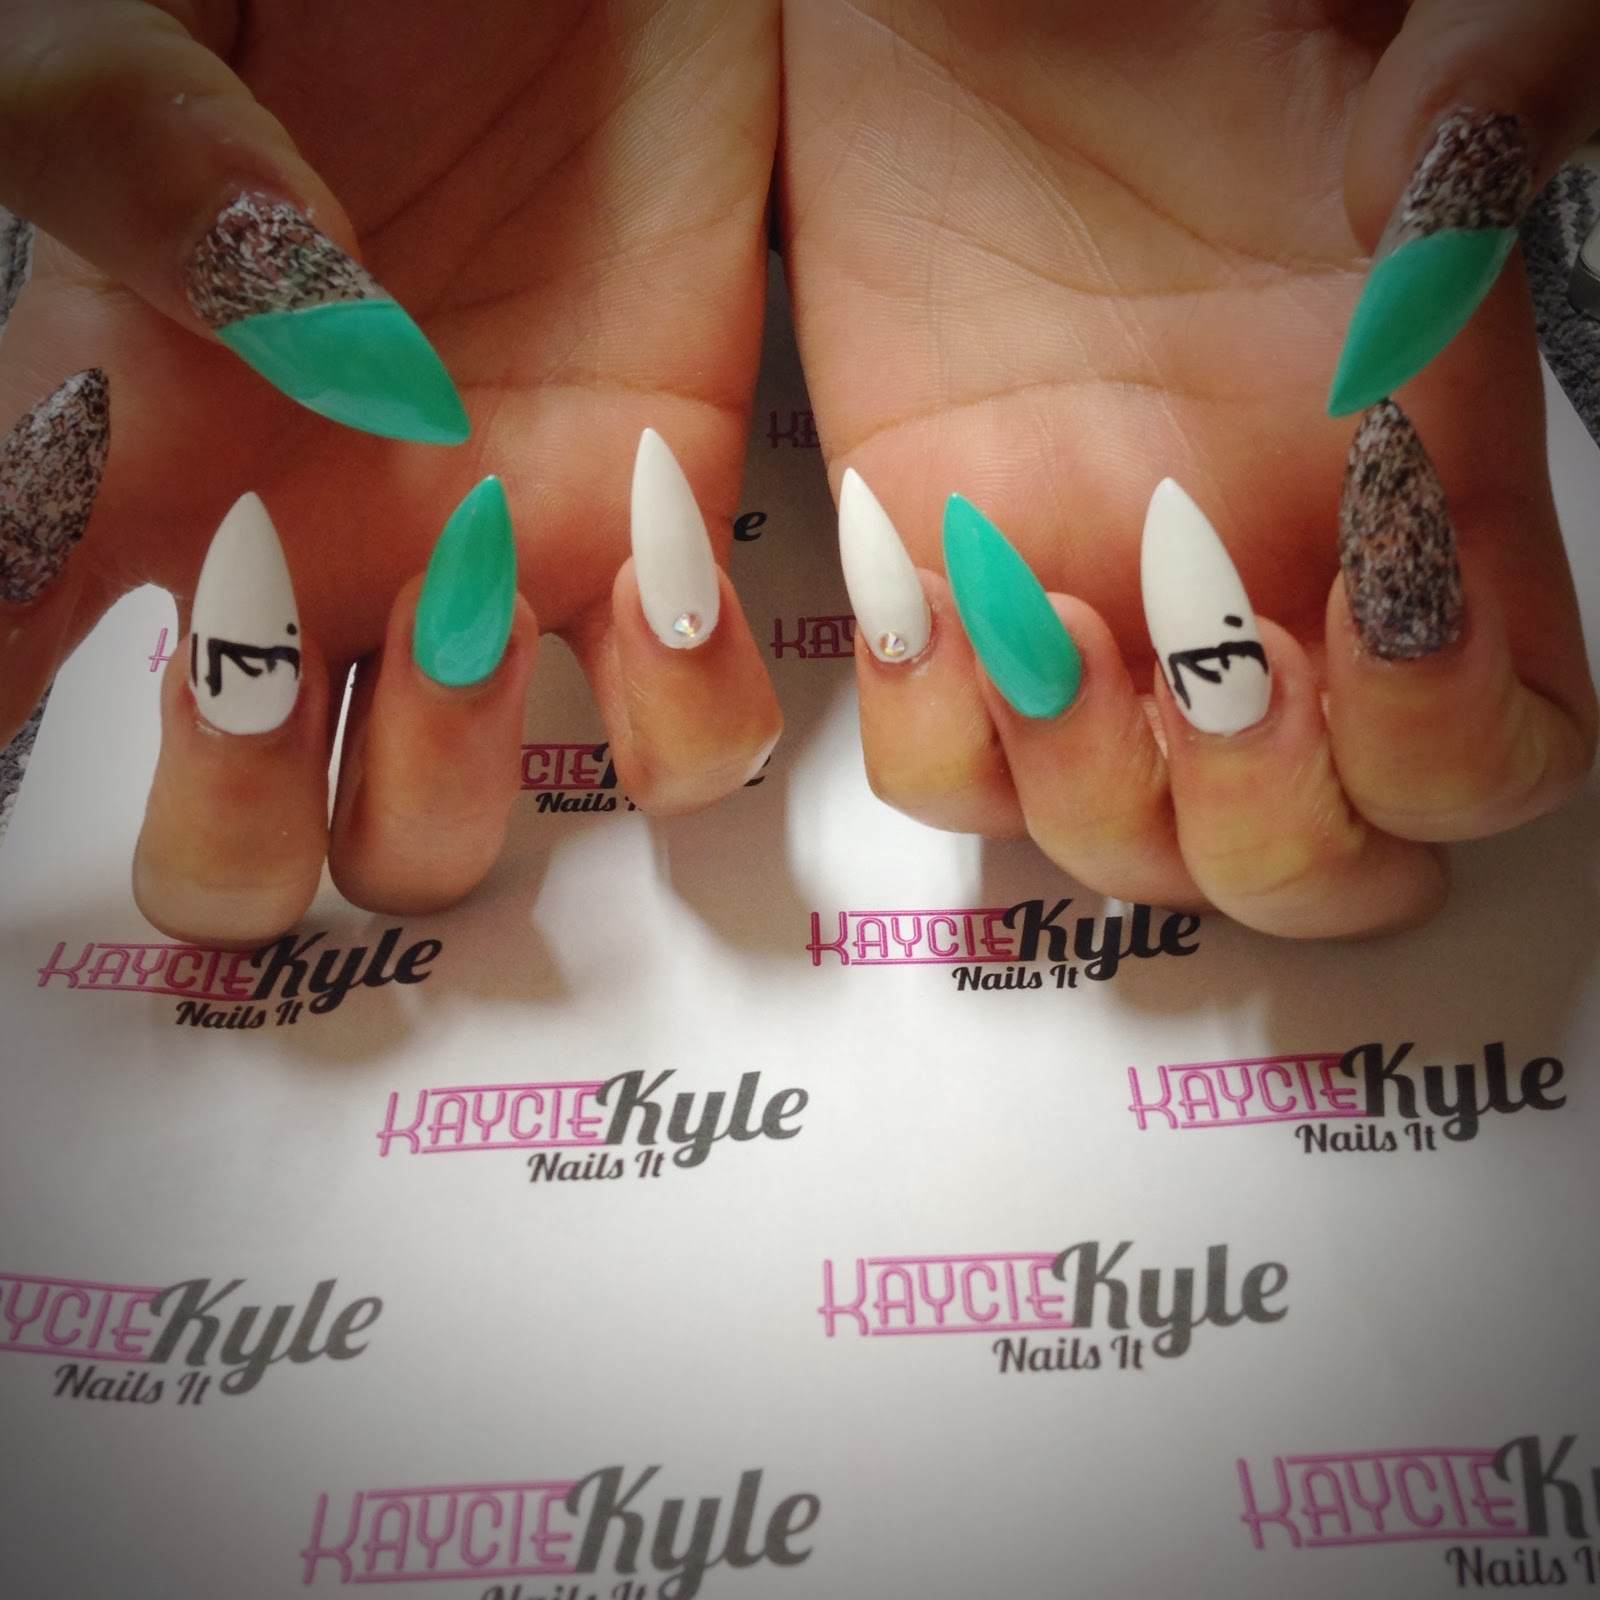 Above This Design Was Inspired By L Paris Nails On Instgram The Middle Finger Has A